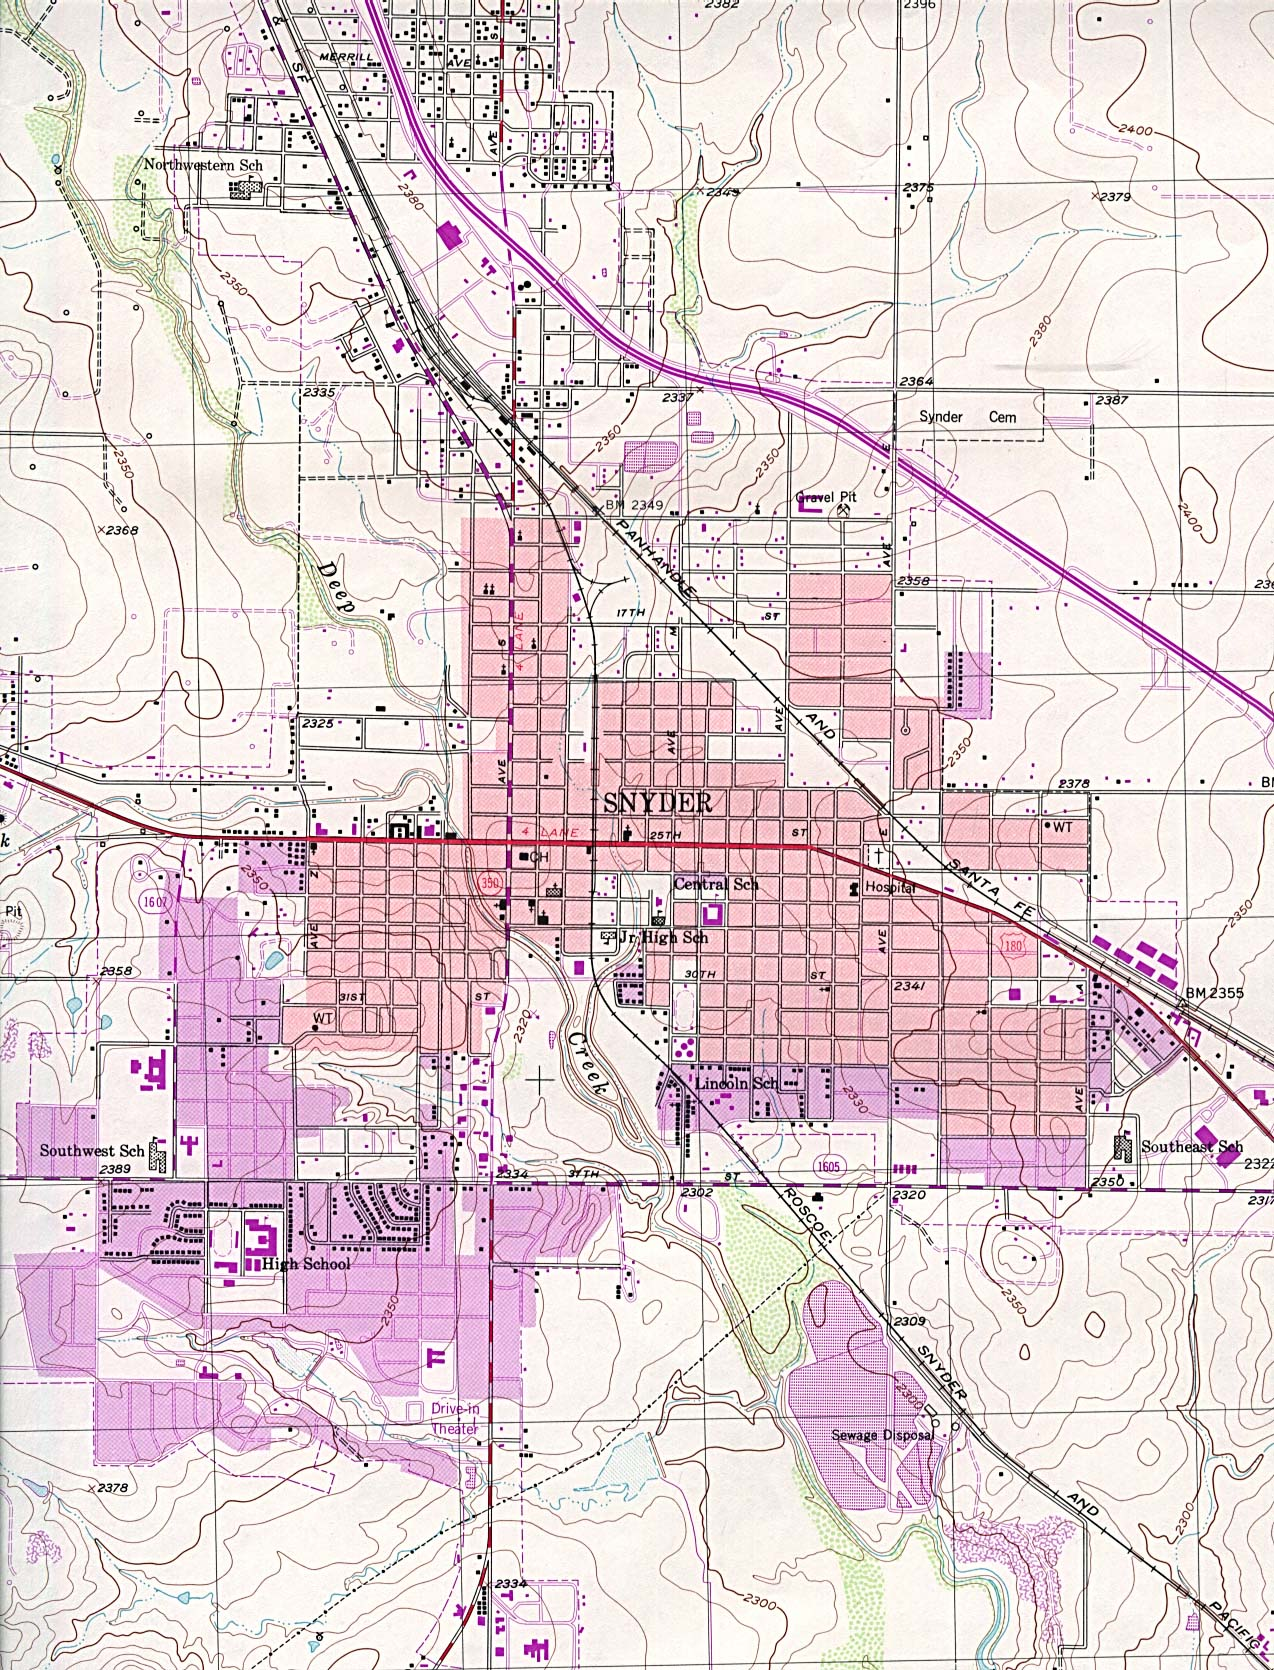 Texas City Maps - Perry-Castañeda Map Collection - UT ... on map whitehouse texas, angleton county texas, mammp angleton texas, map of new york, map of san antonio, texas map katy texas, map of zip code 77566,